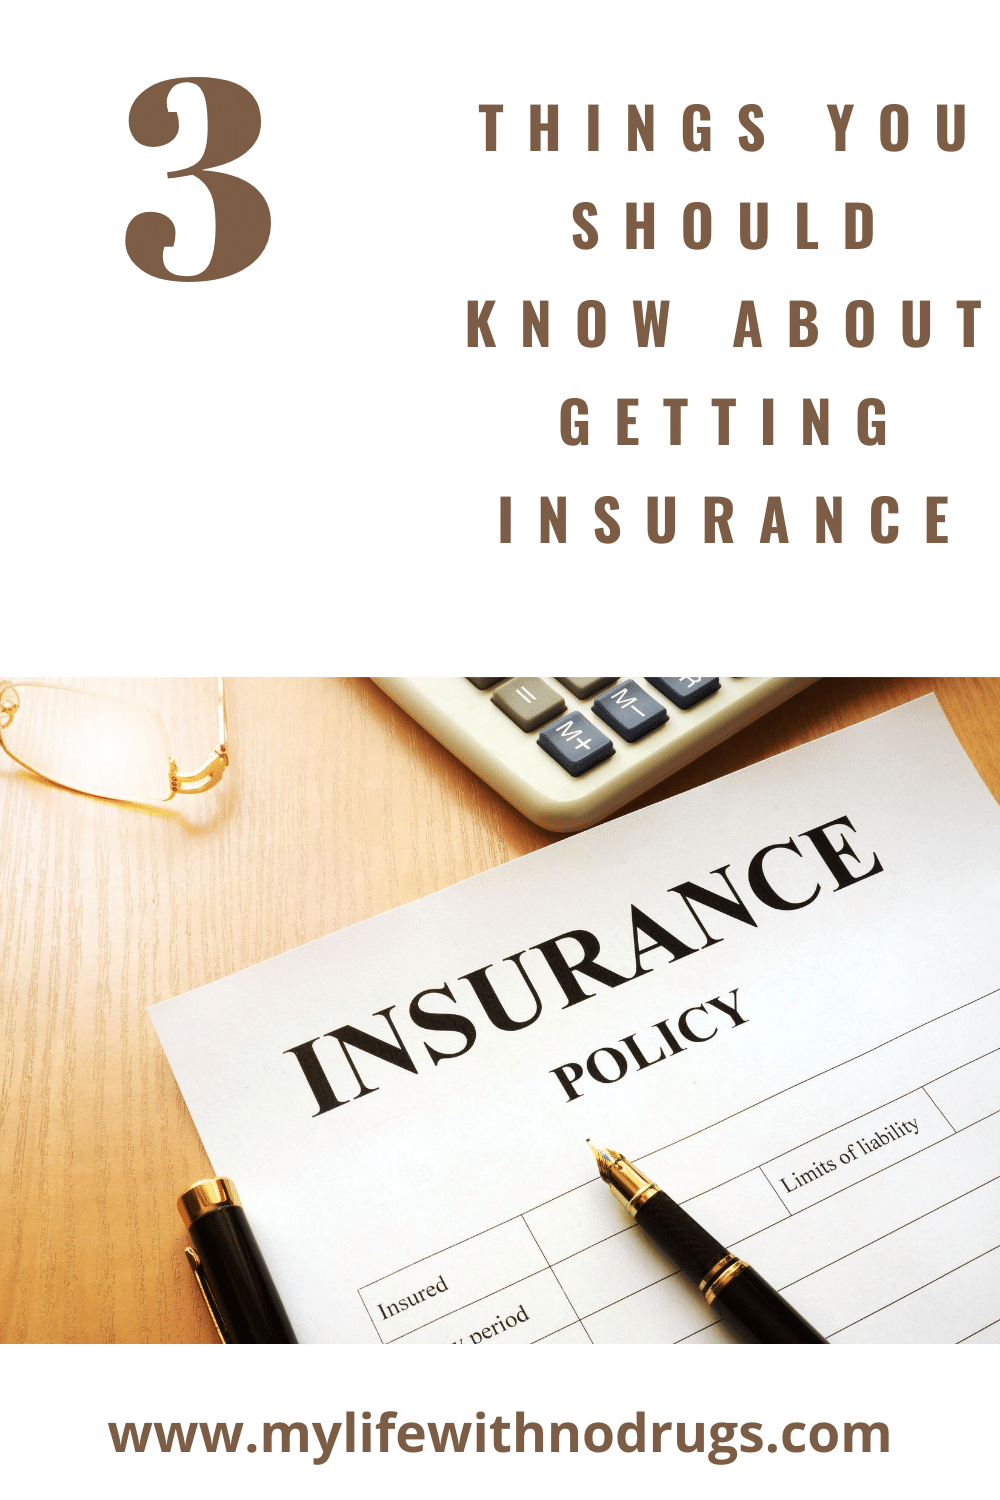 Top 3 Things You Should Know About Getting Insurance